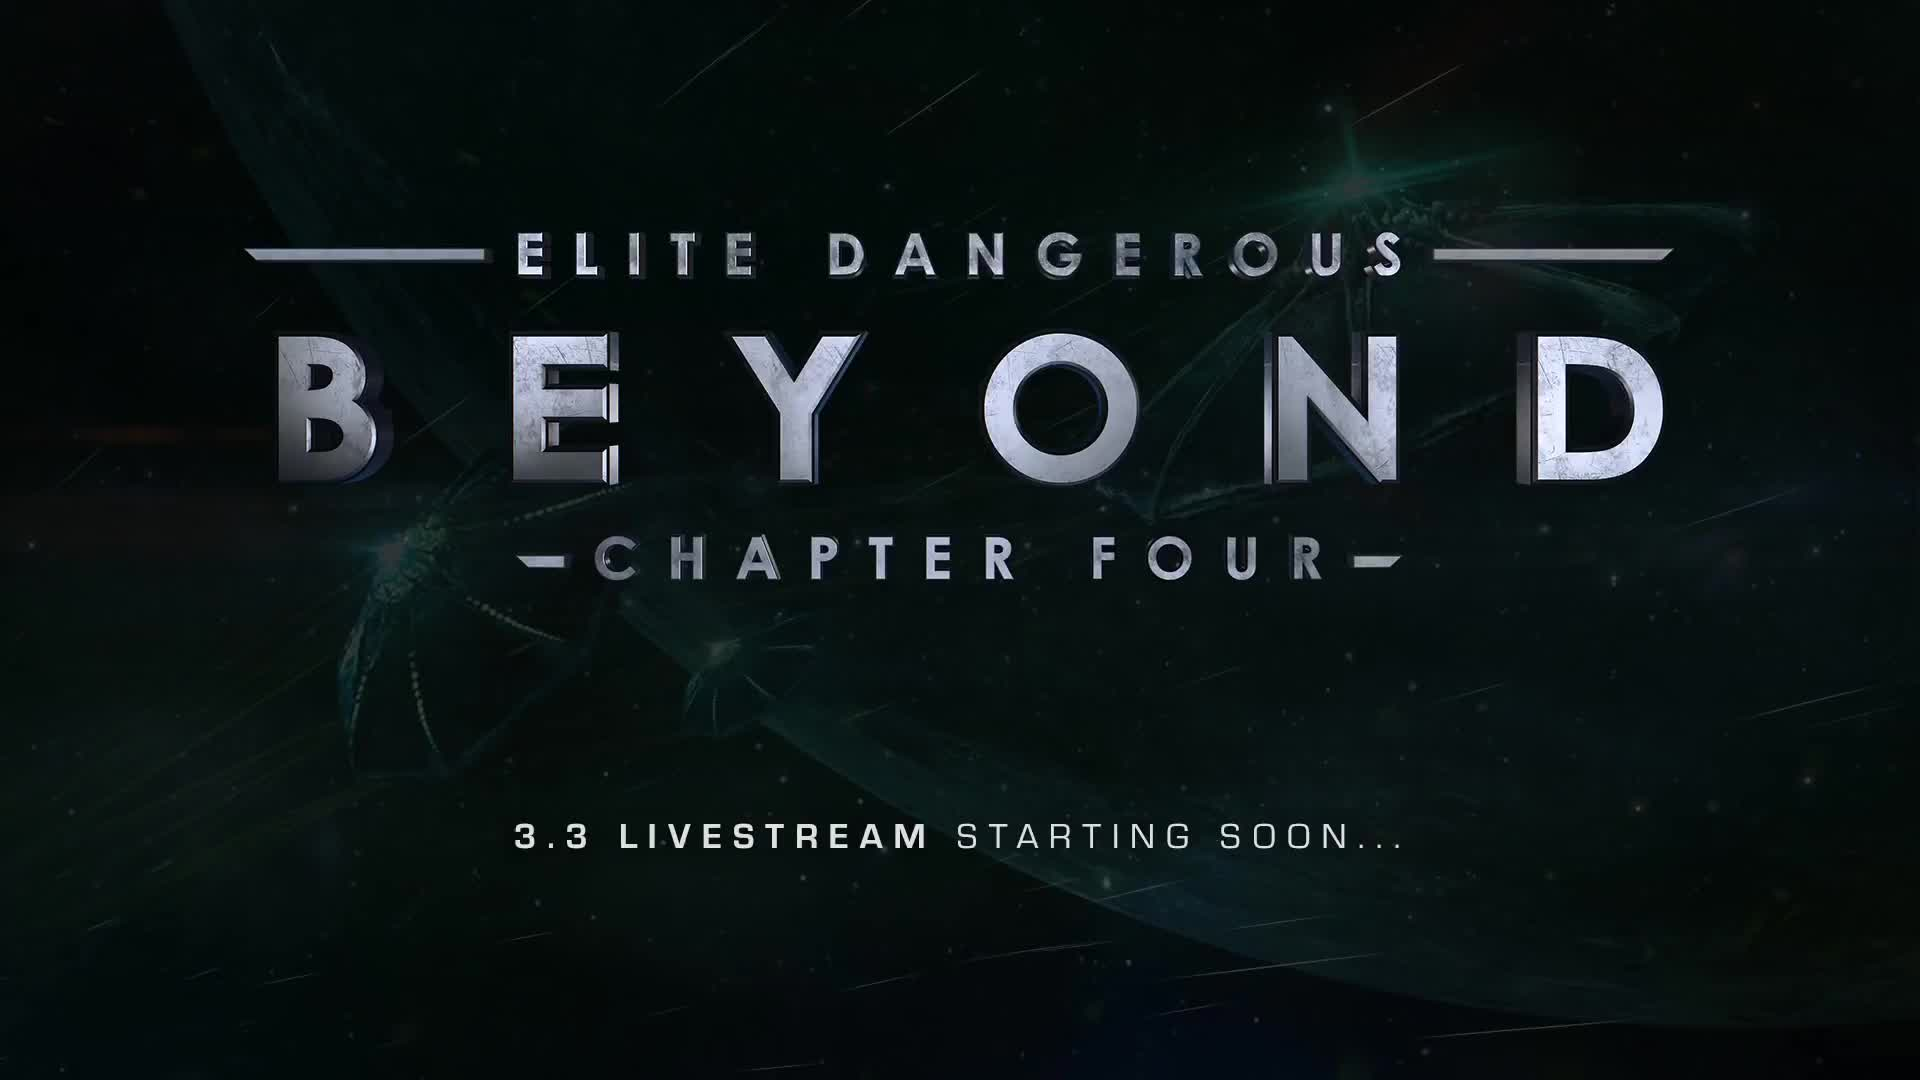 Beyond Chapter Four Mining And Squadrons Reveal